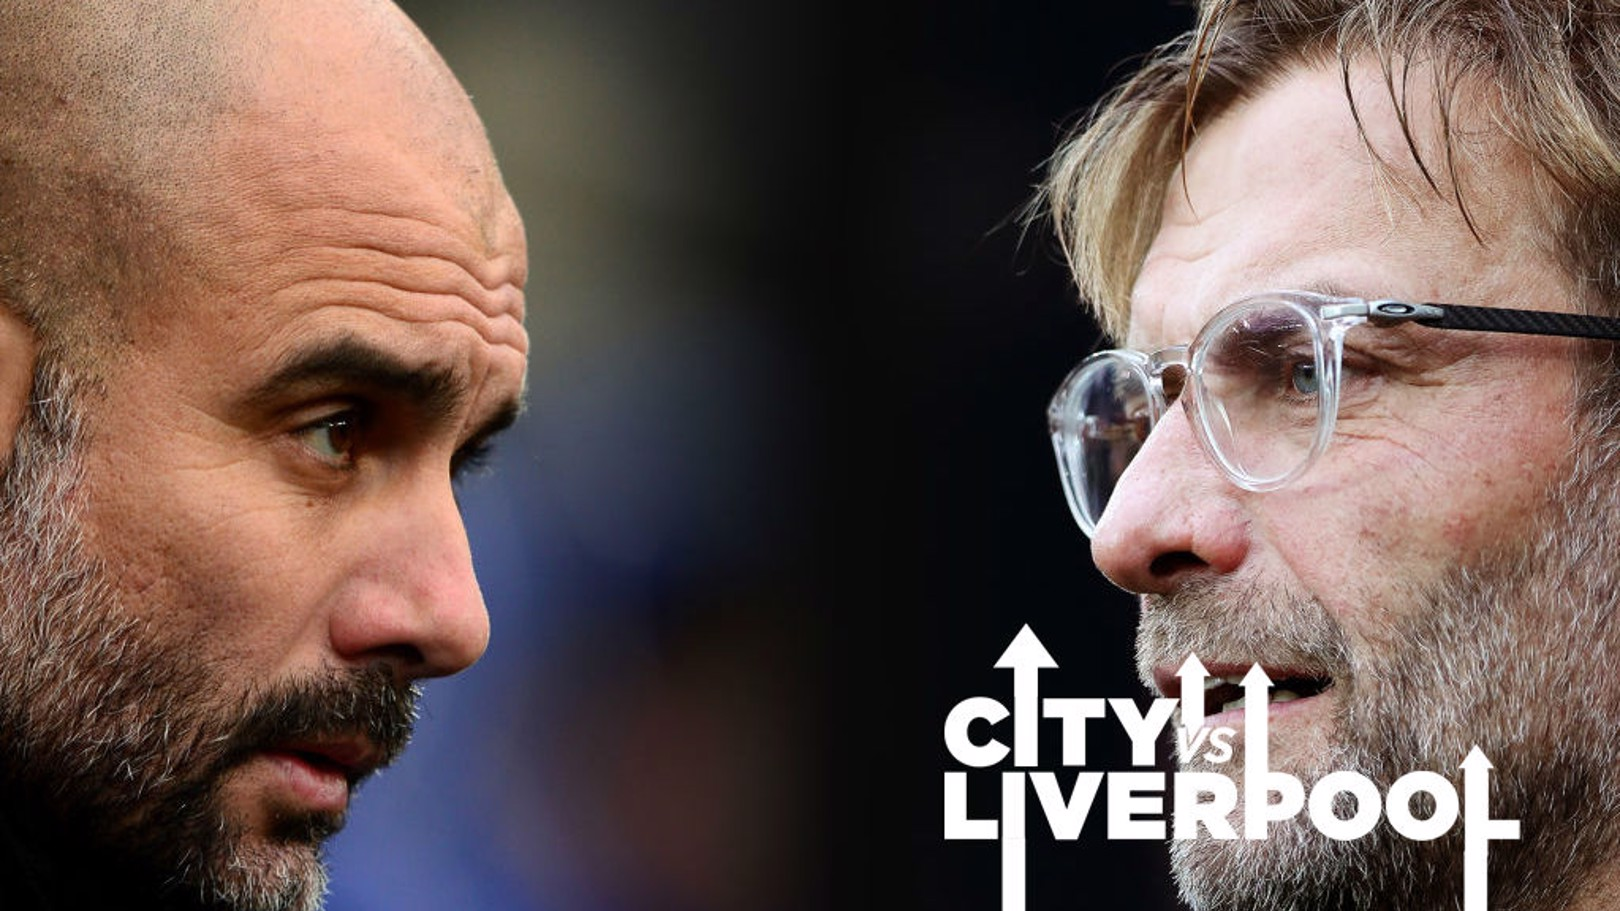 BIG GAME: City and Liverpool clash tonight in a top-of-the-table encounter